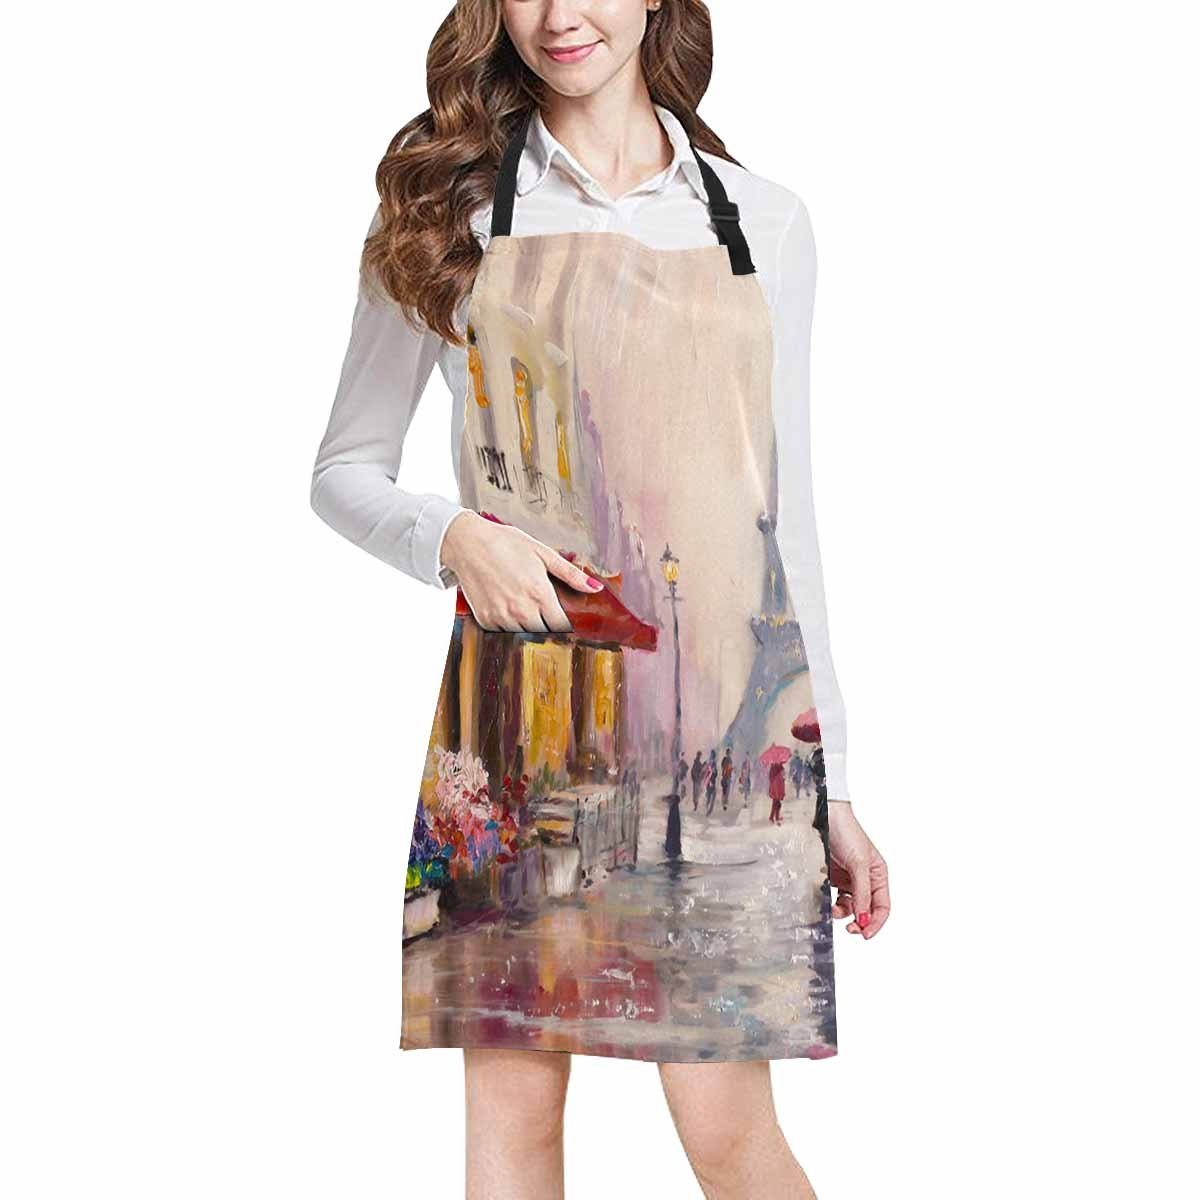 InterestPrint Modern Art A Pair Of Lovers in France Paris Eiffel Tower Chef Kitchen Apron, Adjustable Strap & Waist Ties, Front Pockets, Perfect for Cooking, Baking, Barbequing, Large Size